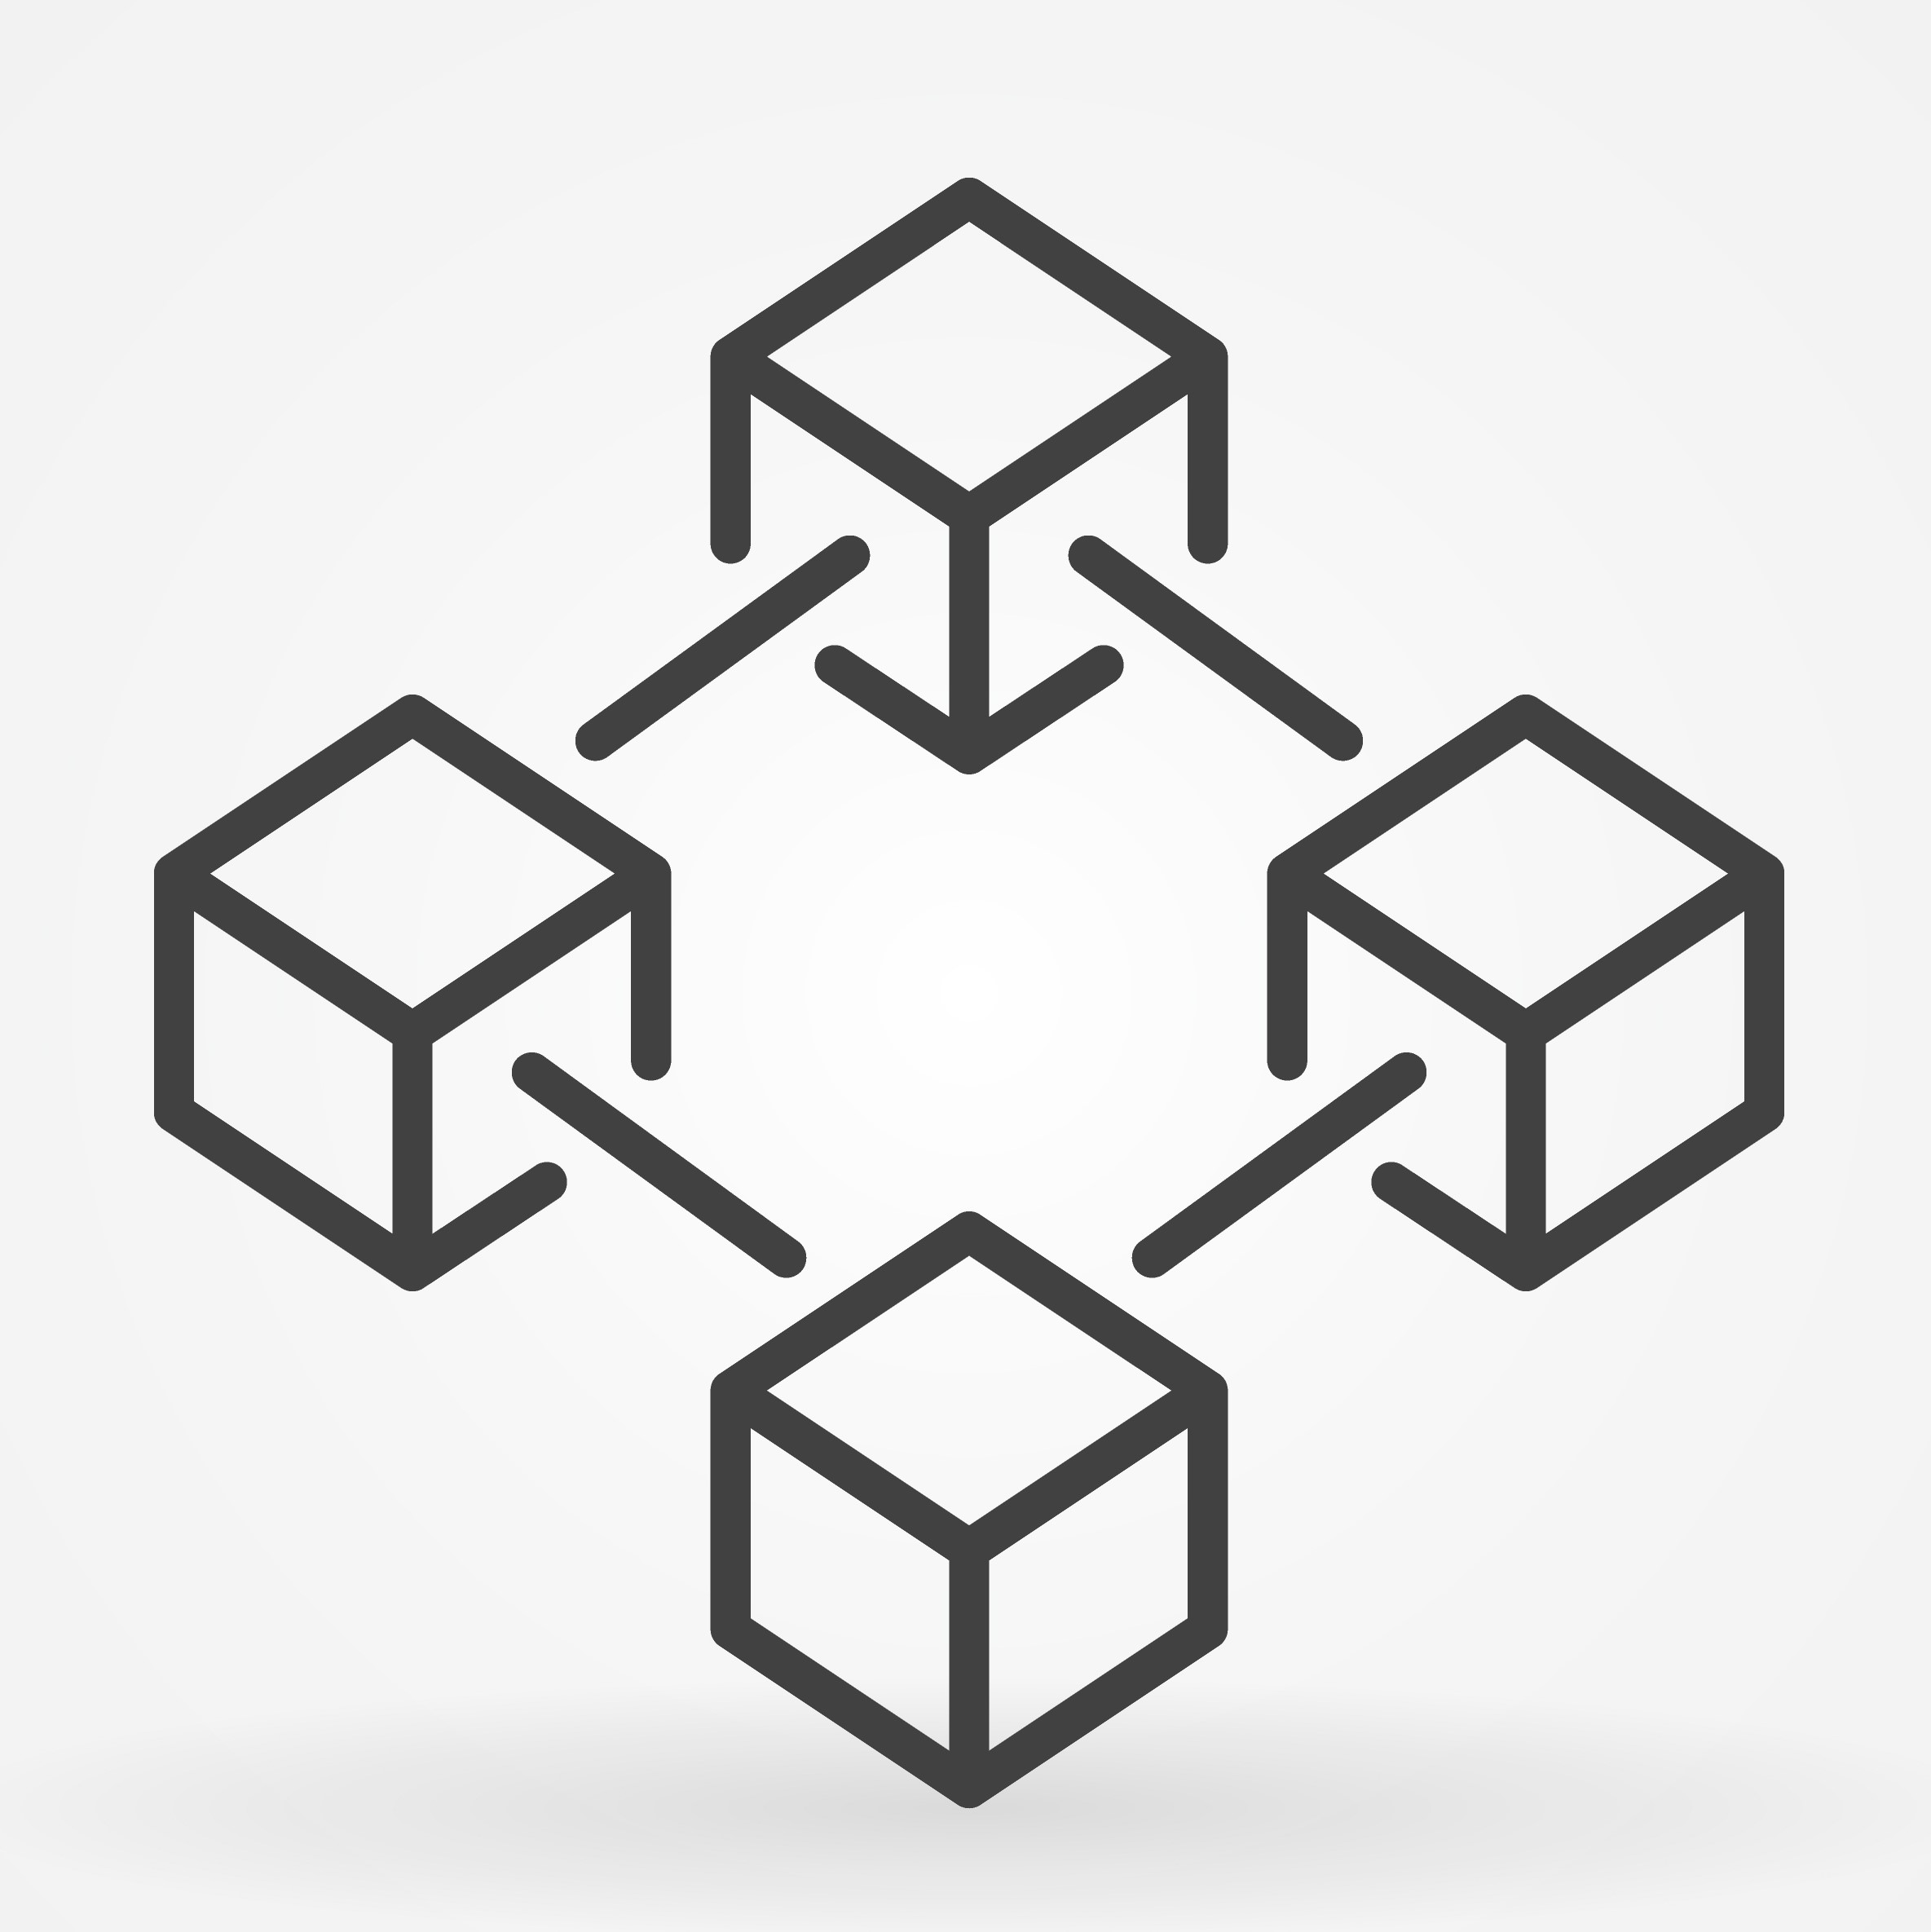 Private (Boutique trading firm) blockchain jobs